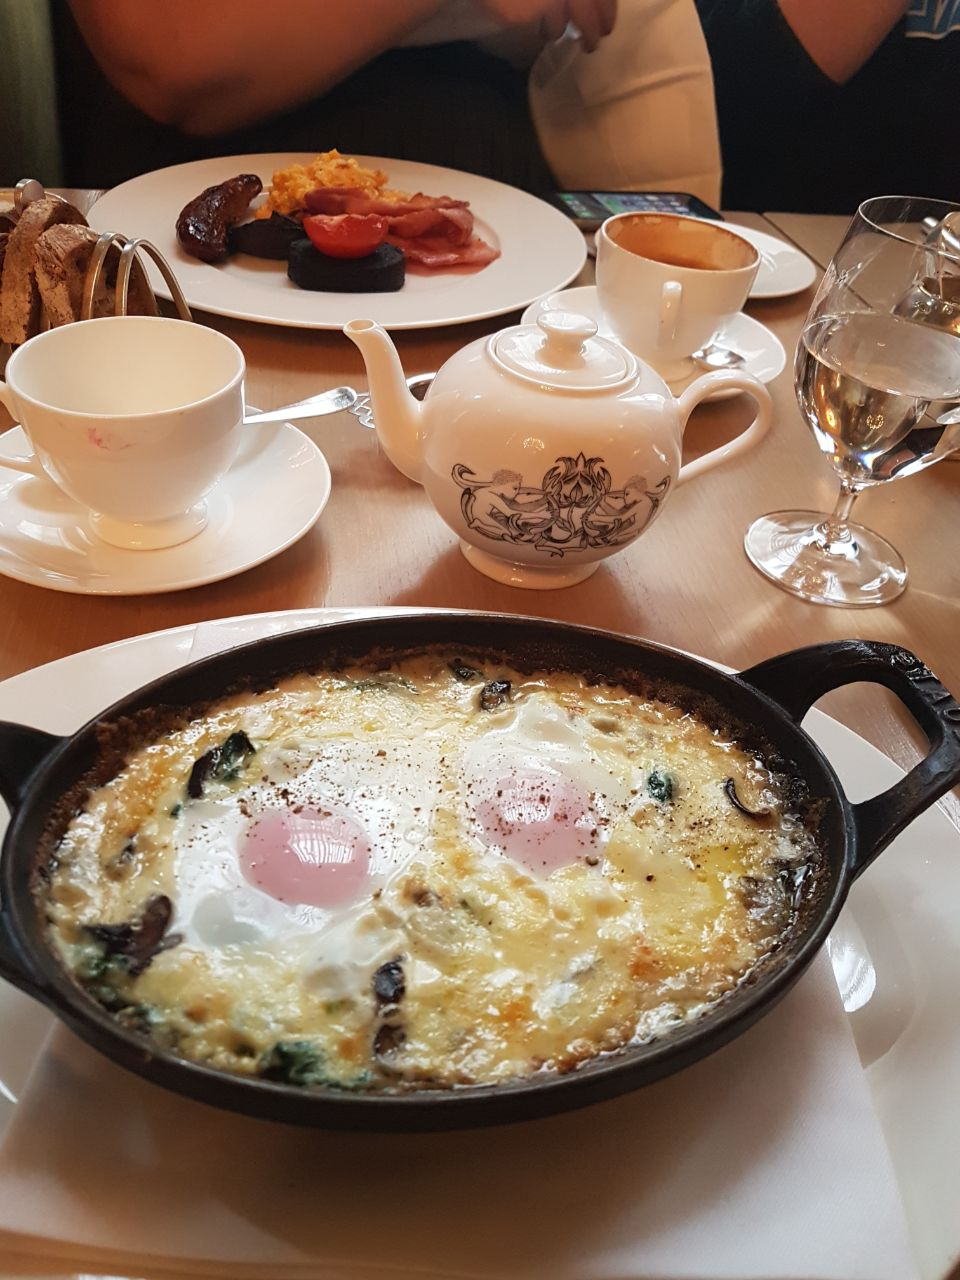 Lou's baked eggs and tea at Berners Tavern